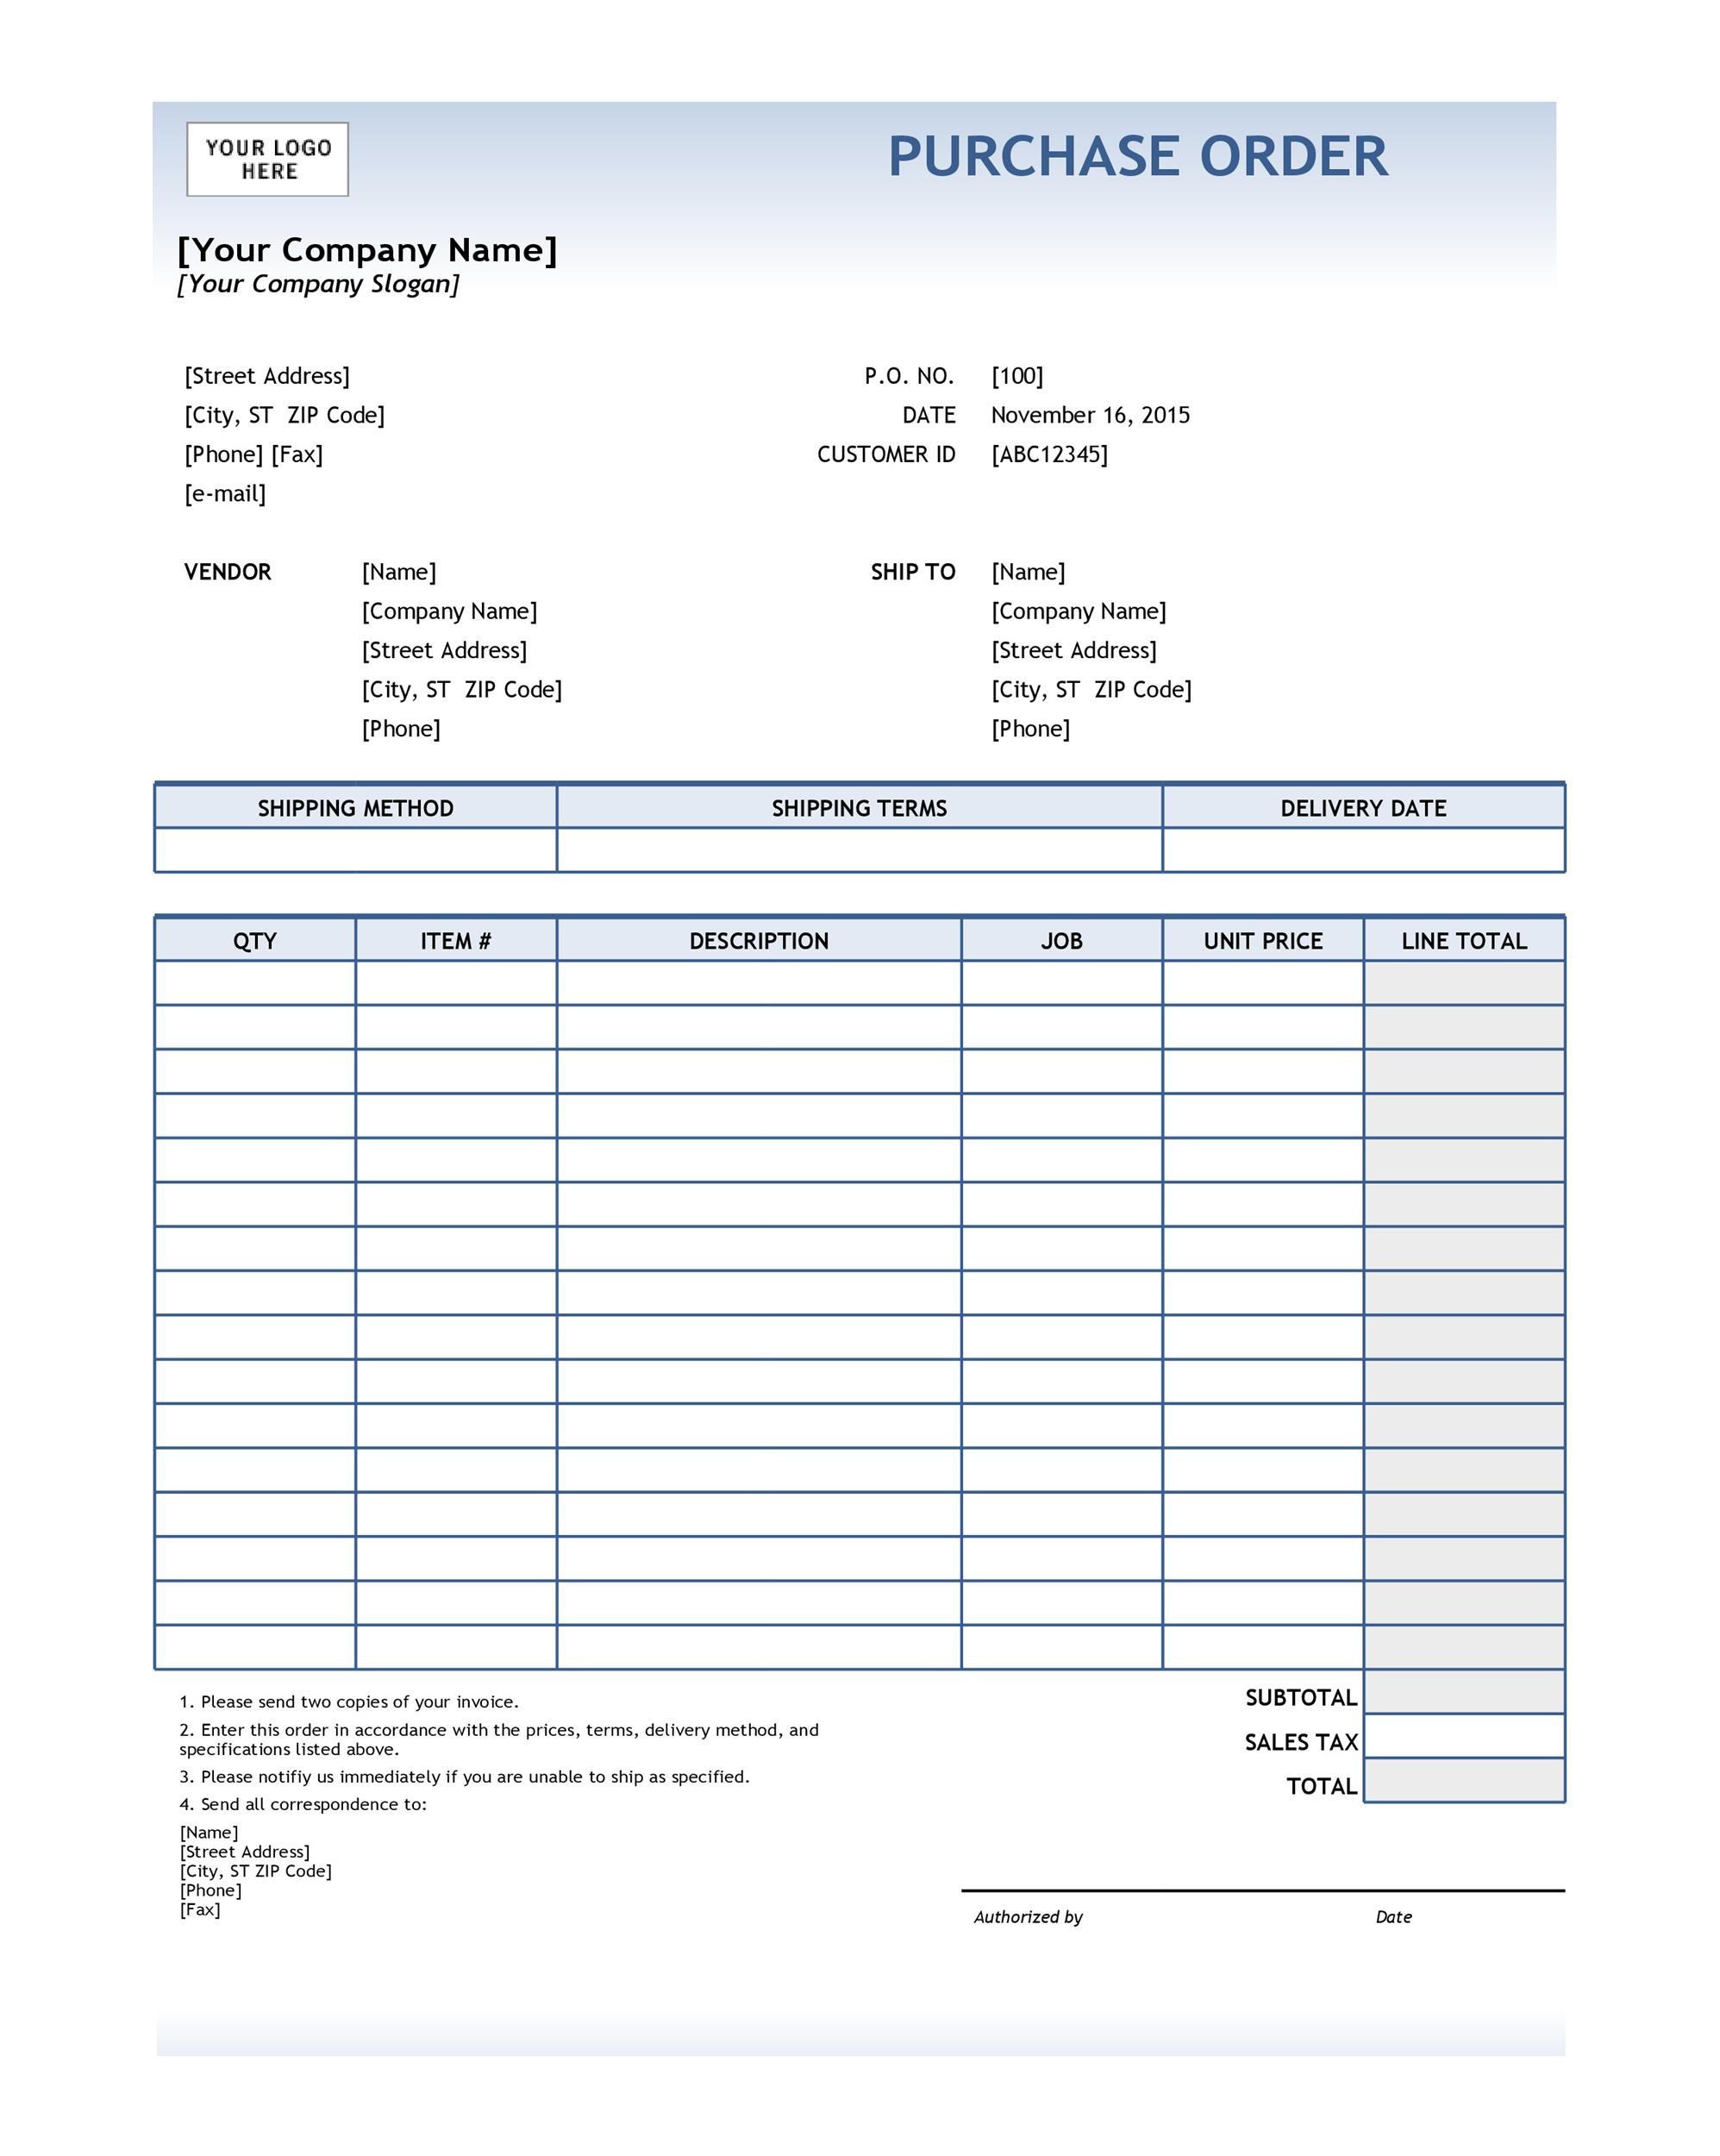 Contoh Purchase Order Barang : contoh, purchase, order, barang, Purchase, Order, Templates, Word,, Excel,